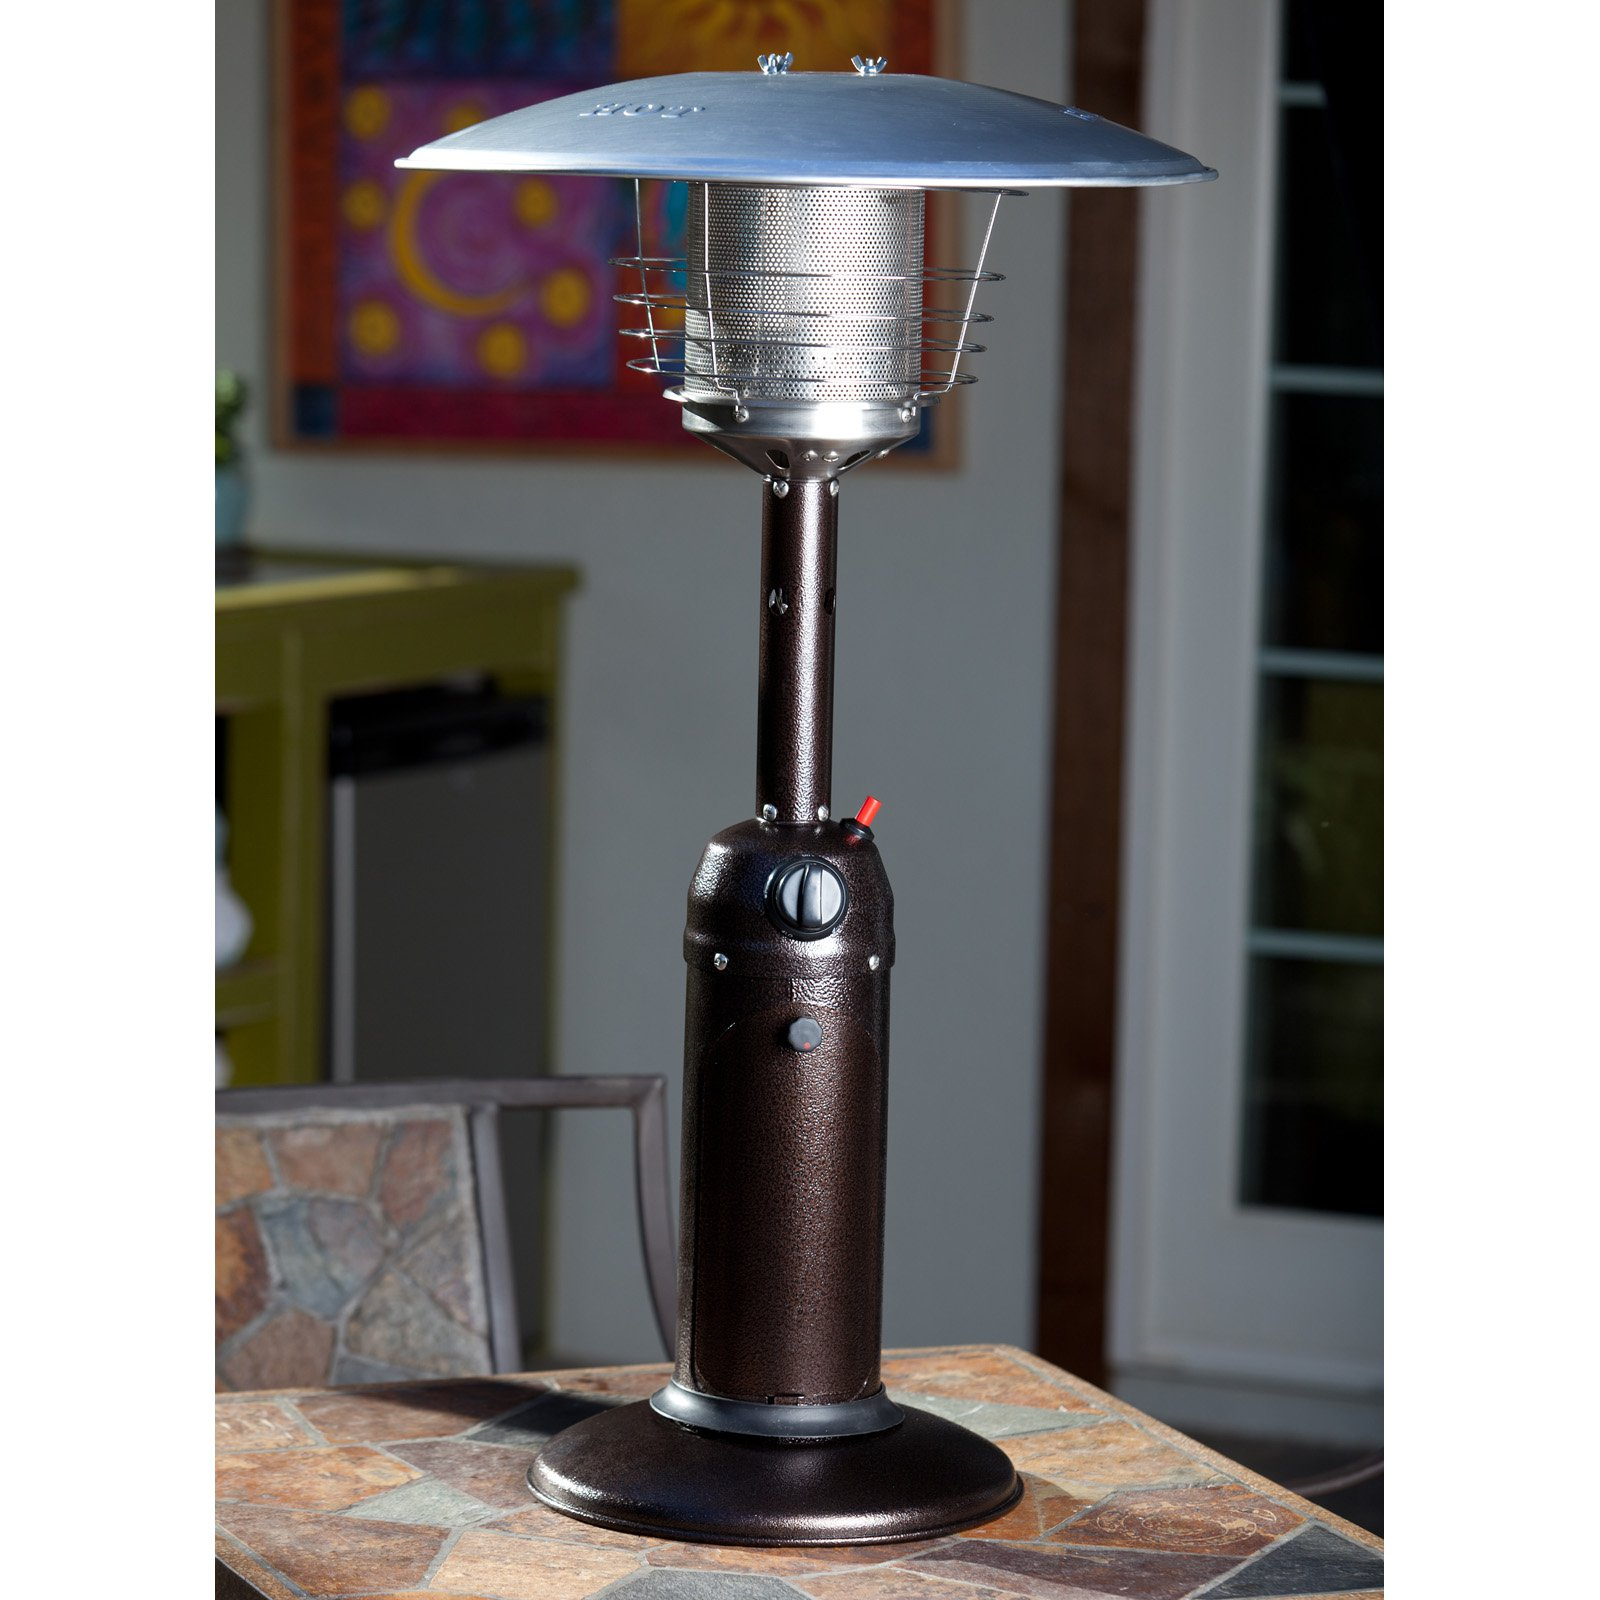 Fire Sense Table Top Patio Heater by Well Traveled Living